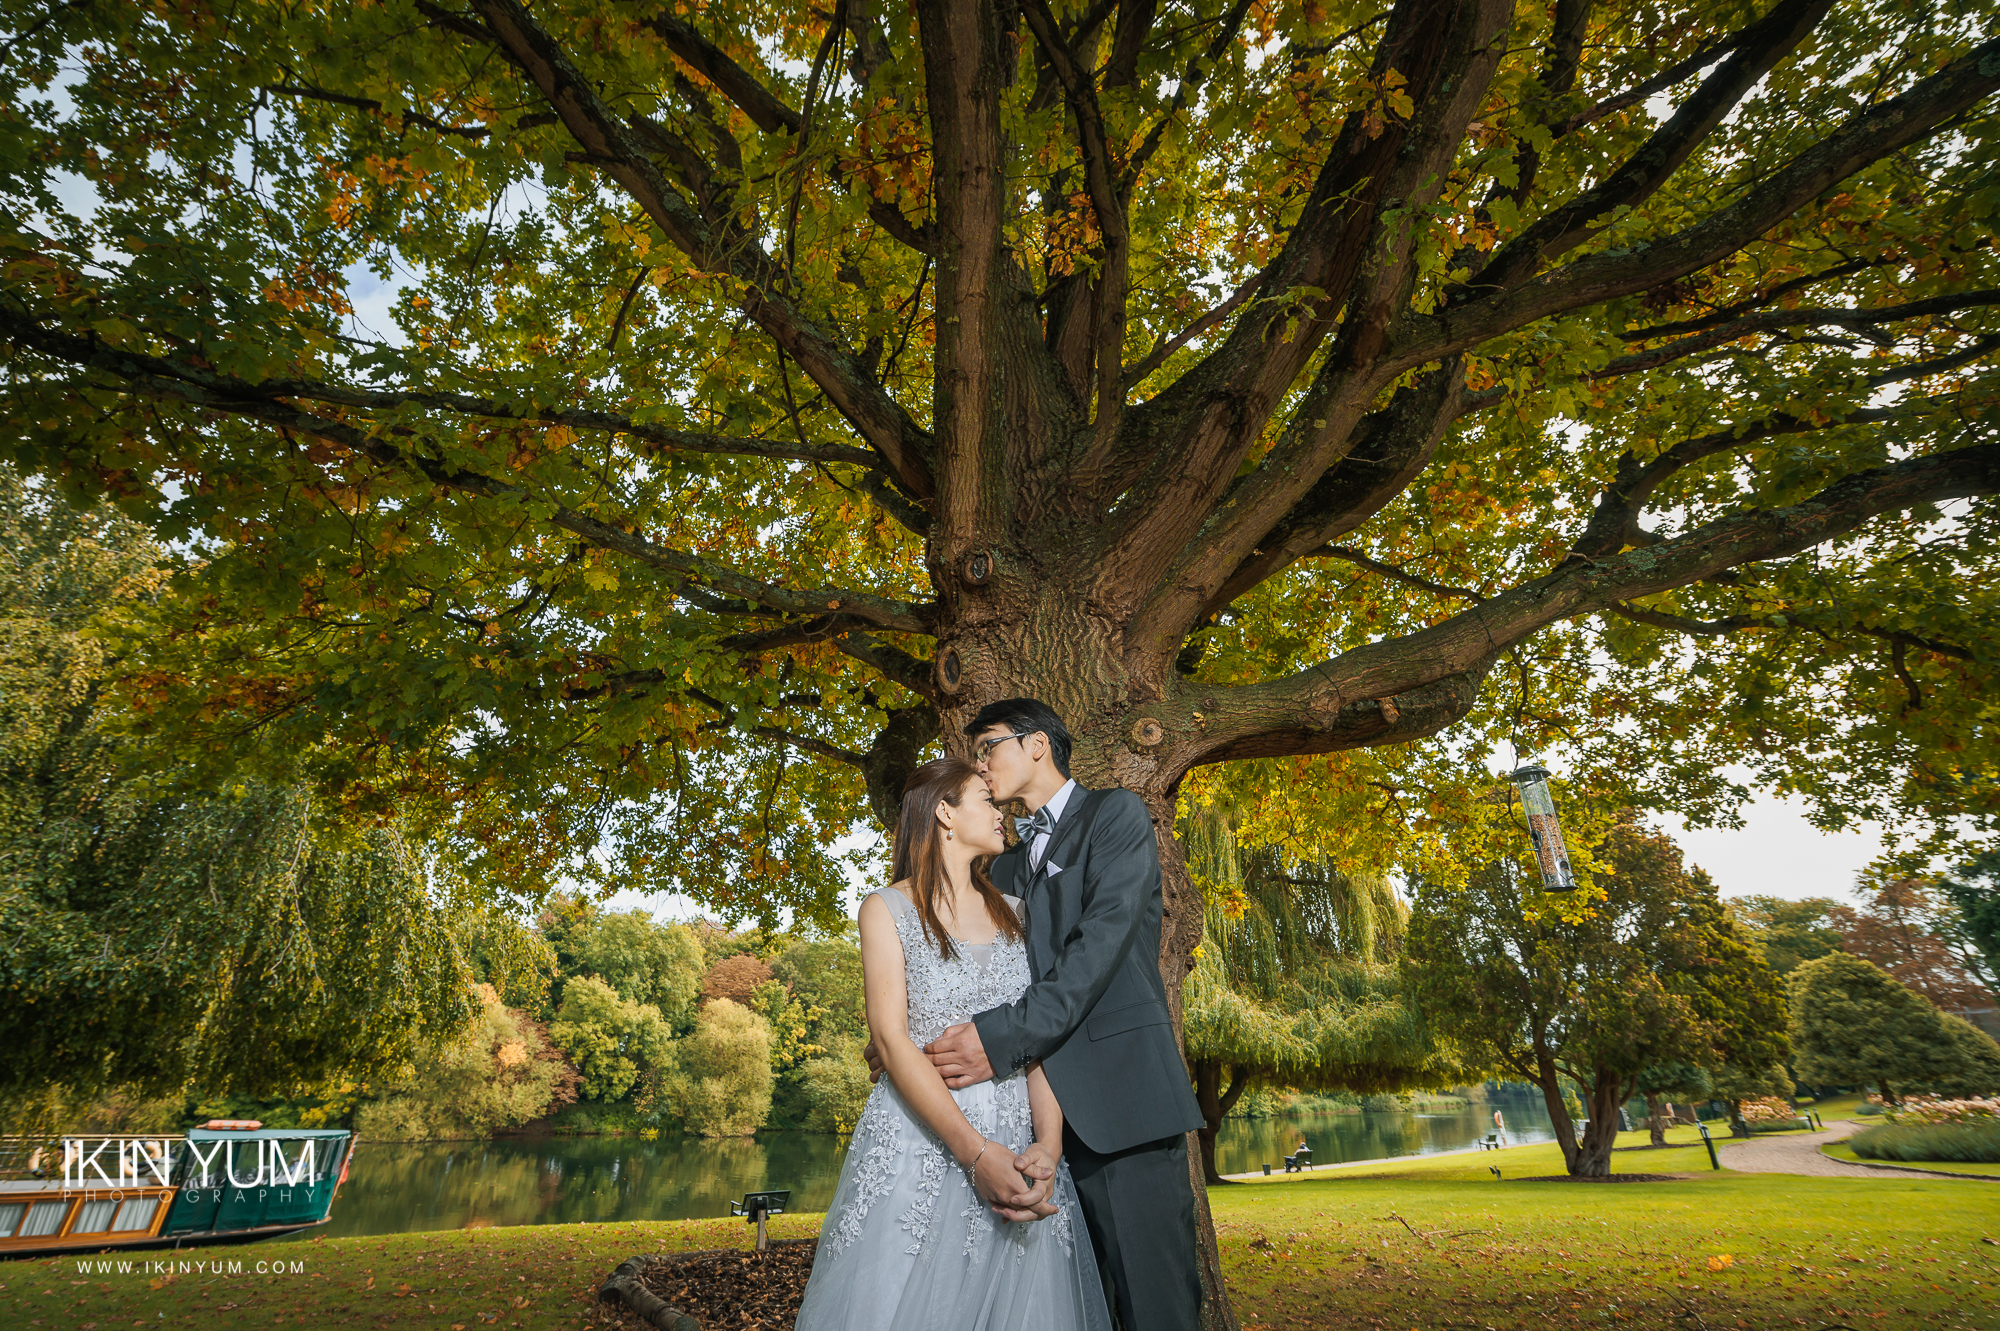 The oakley court Pre-Wedding Shoot - Ikin Yum Photography-035.jpg